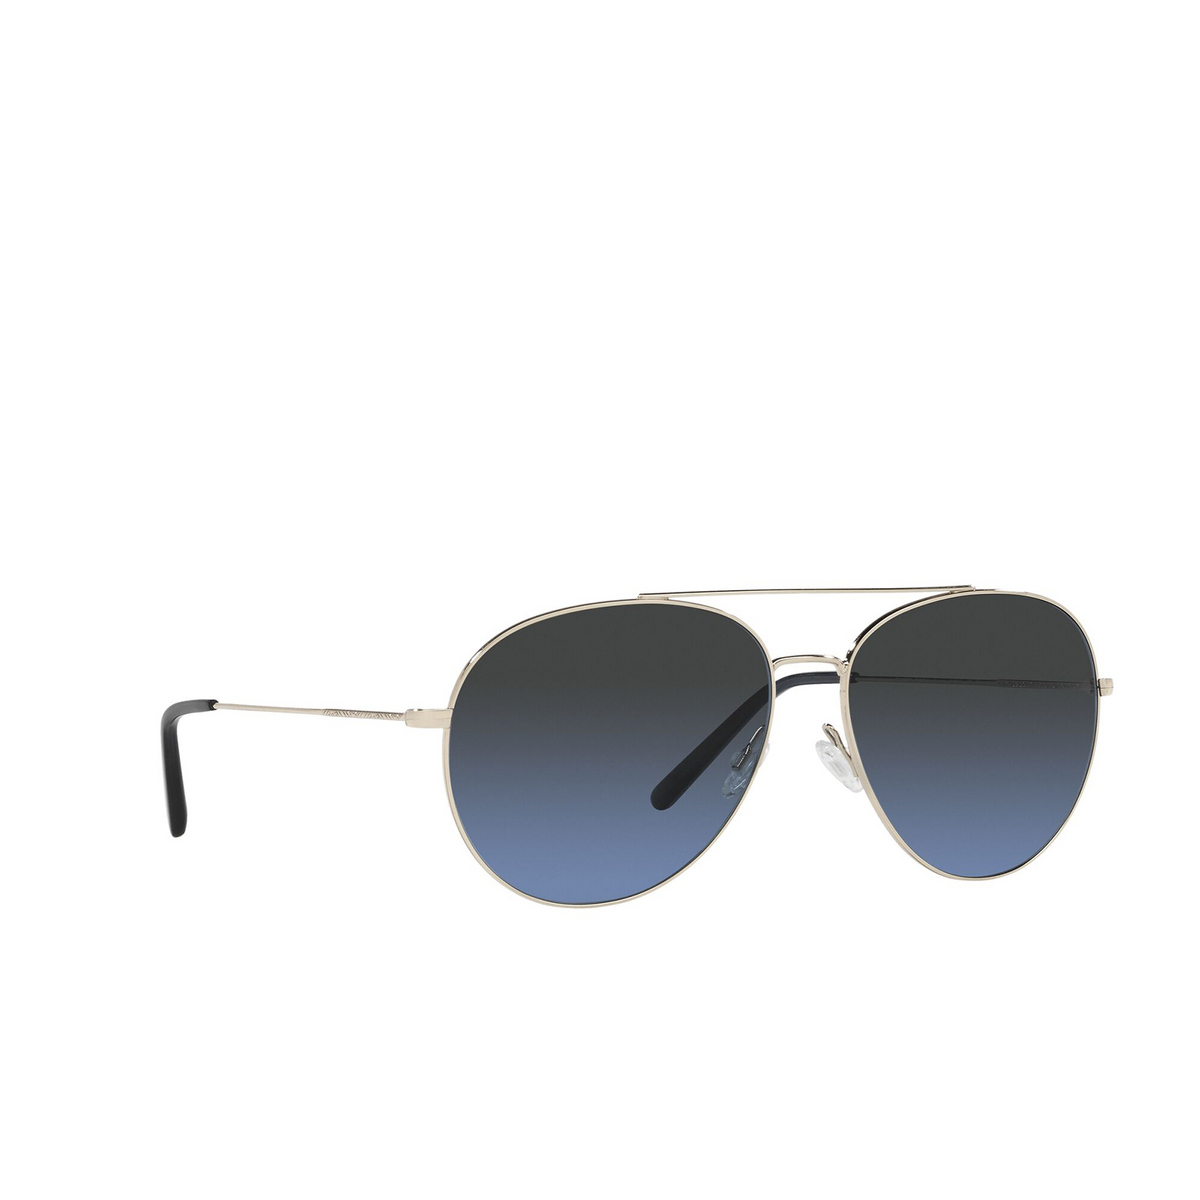 Oliver Peoples® Aviator Sunglasses: Airdale OV1286S color Soft Gold 5035P4 - three-quarters view.